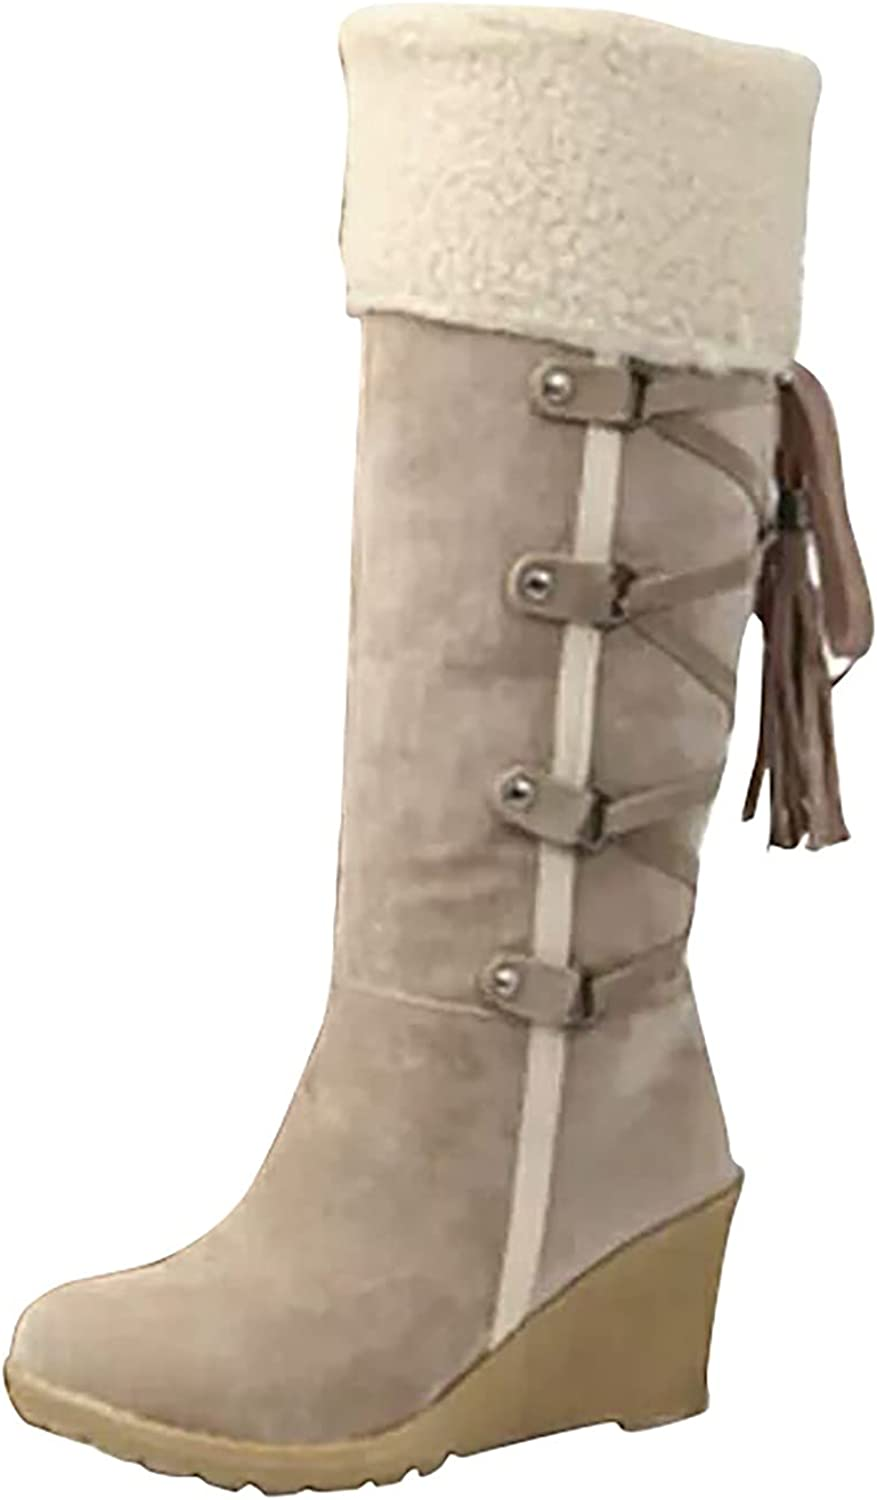 New Western Cowboy Boots For Women Fashion Deer Head Flower Embroidered Low Heel Women'S Mid-Calf Boots Thick Heel Outdoor No-Slip Knight Boots Comfortable Personality All-Match Ladies Work Boots